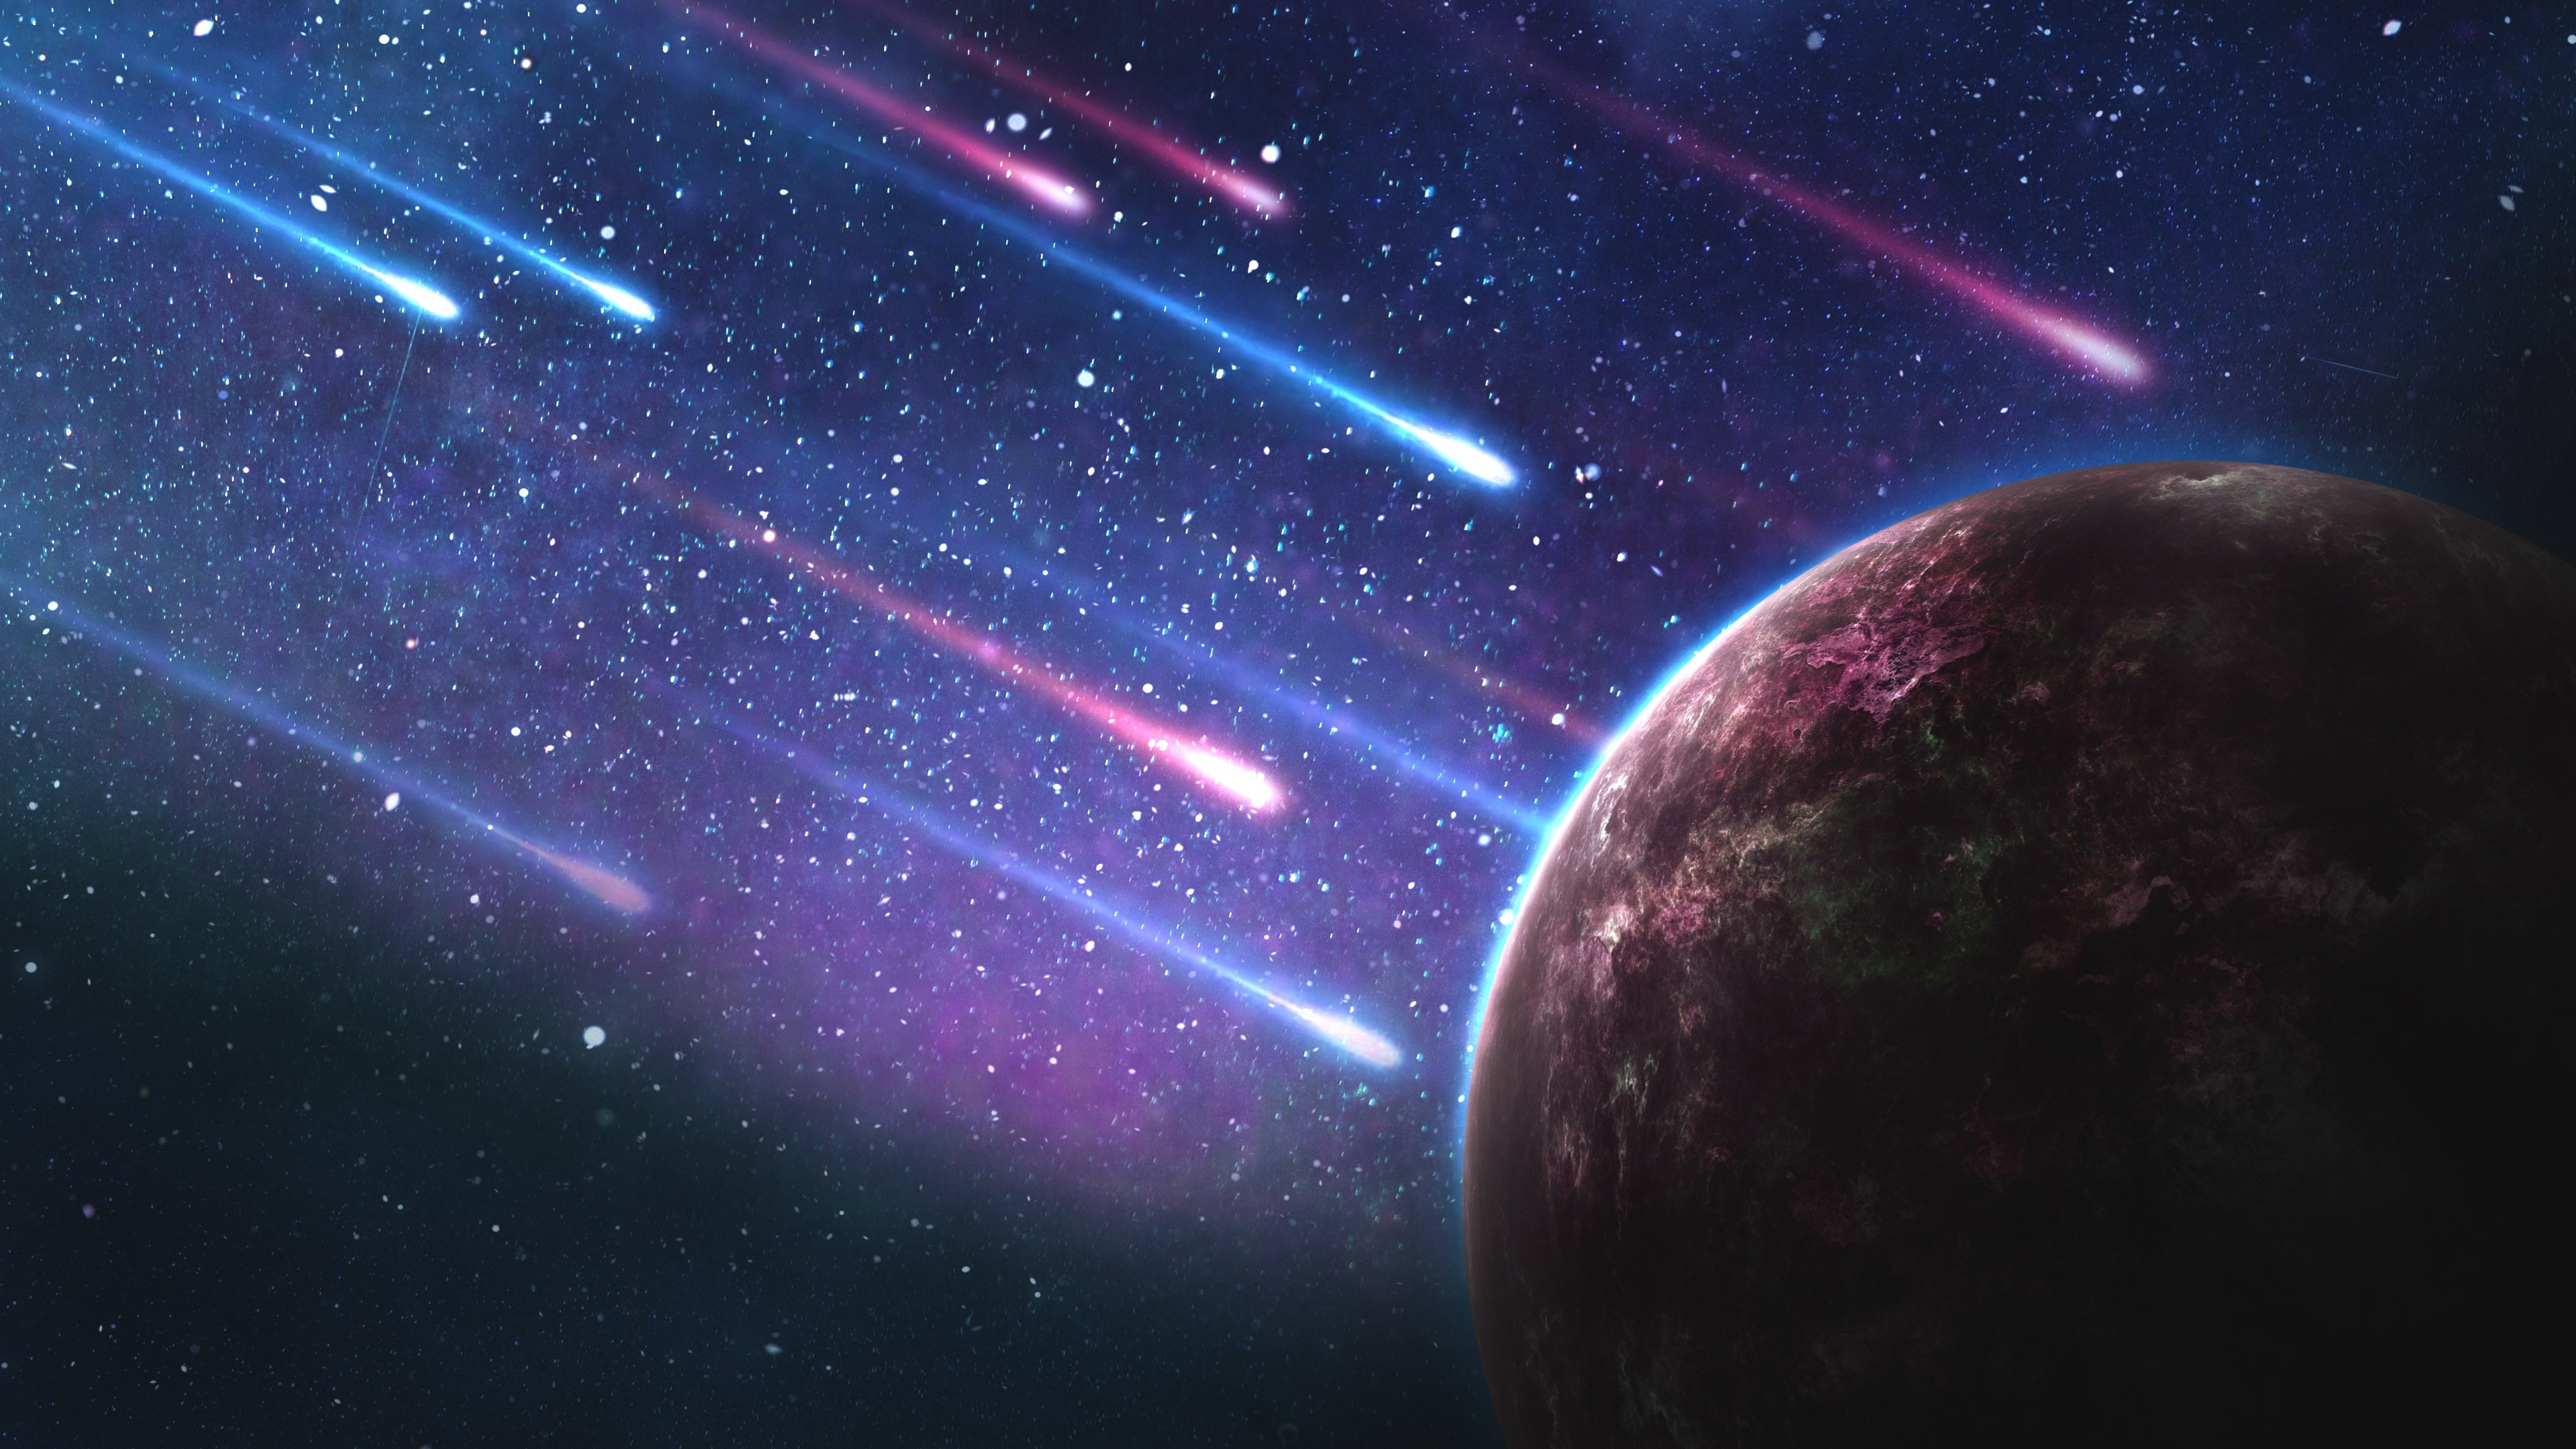 Space galaxy and planets 4k wallpapers and backgrounds page 2 meteorites stars planet 4k horizontal voltagebd Choice Image